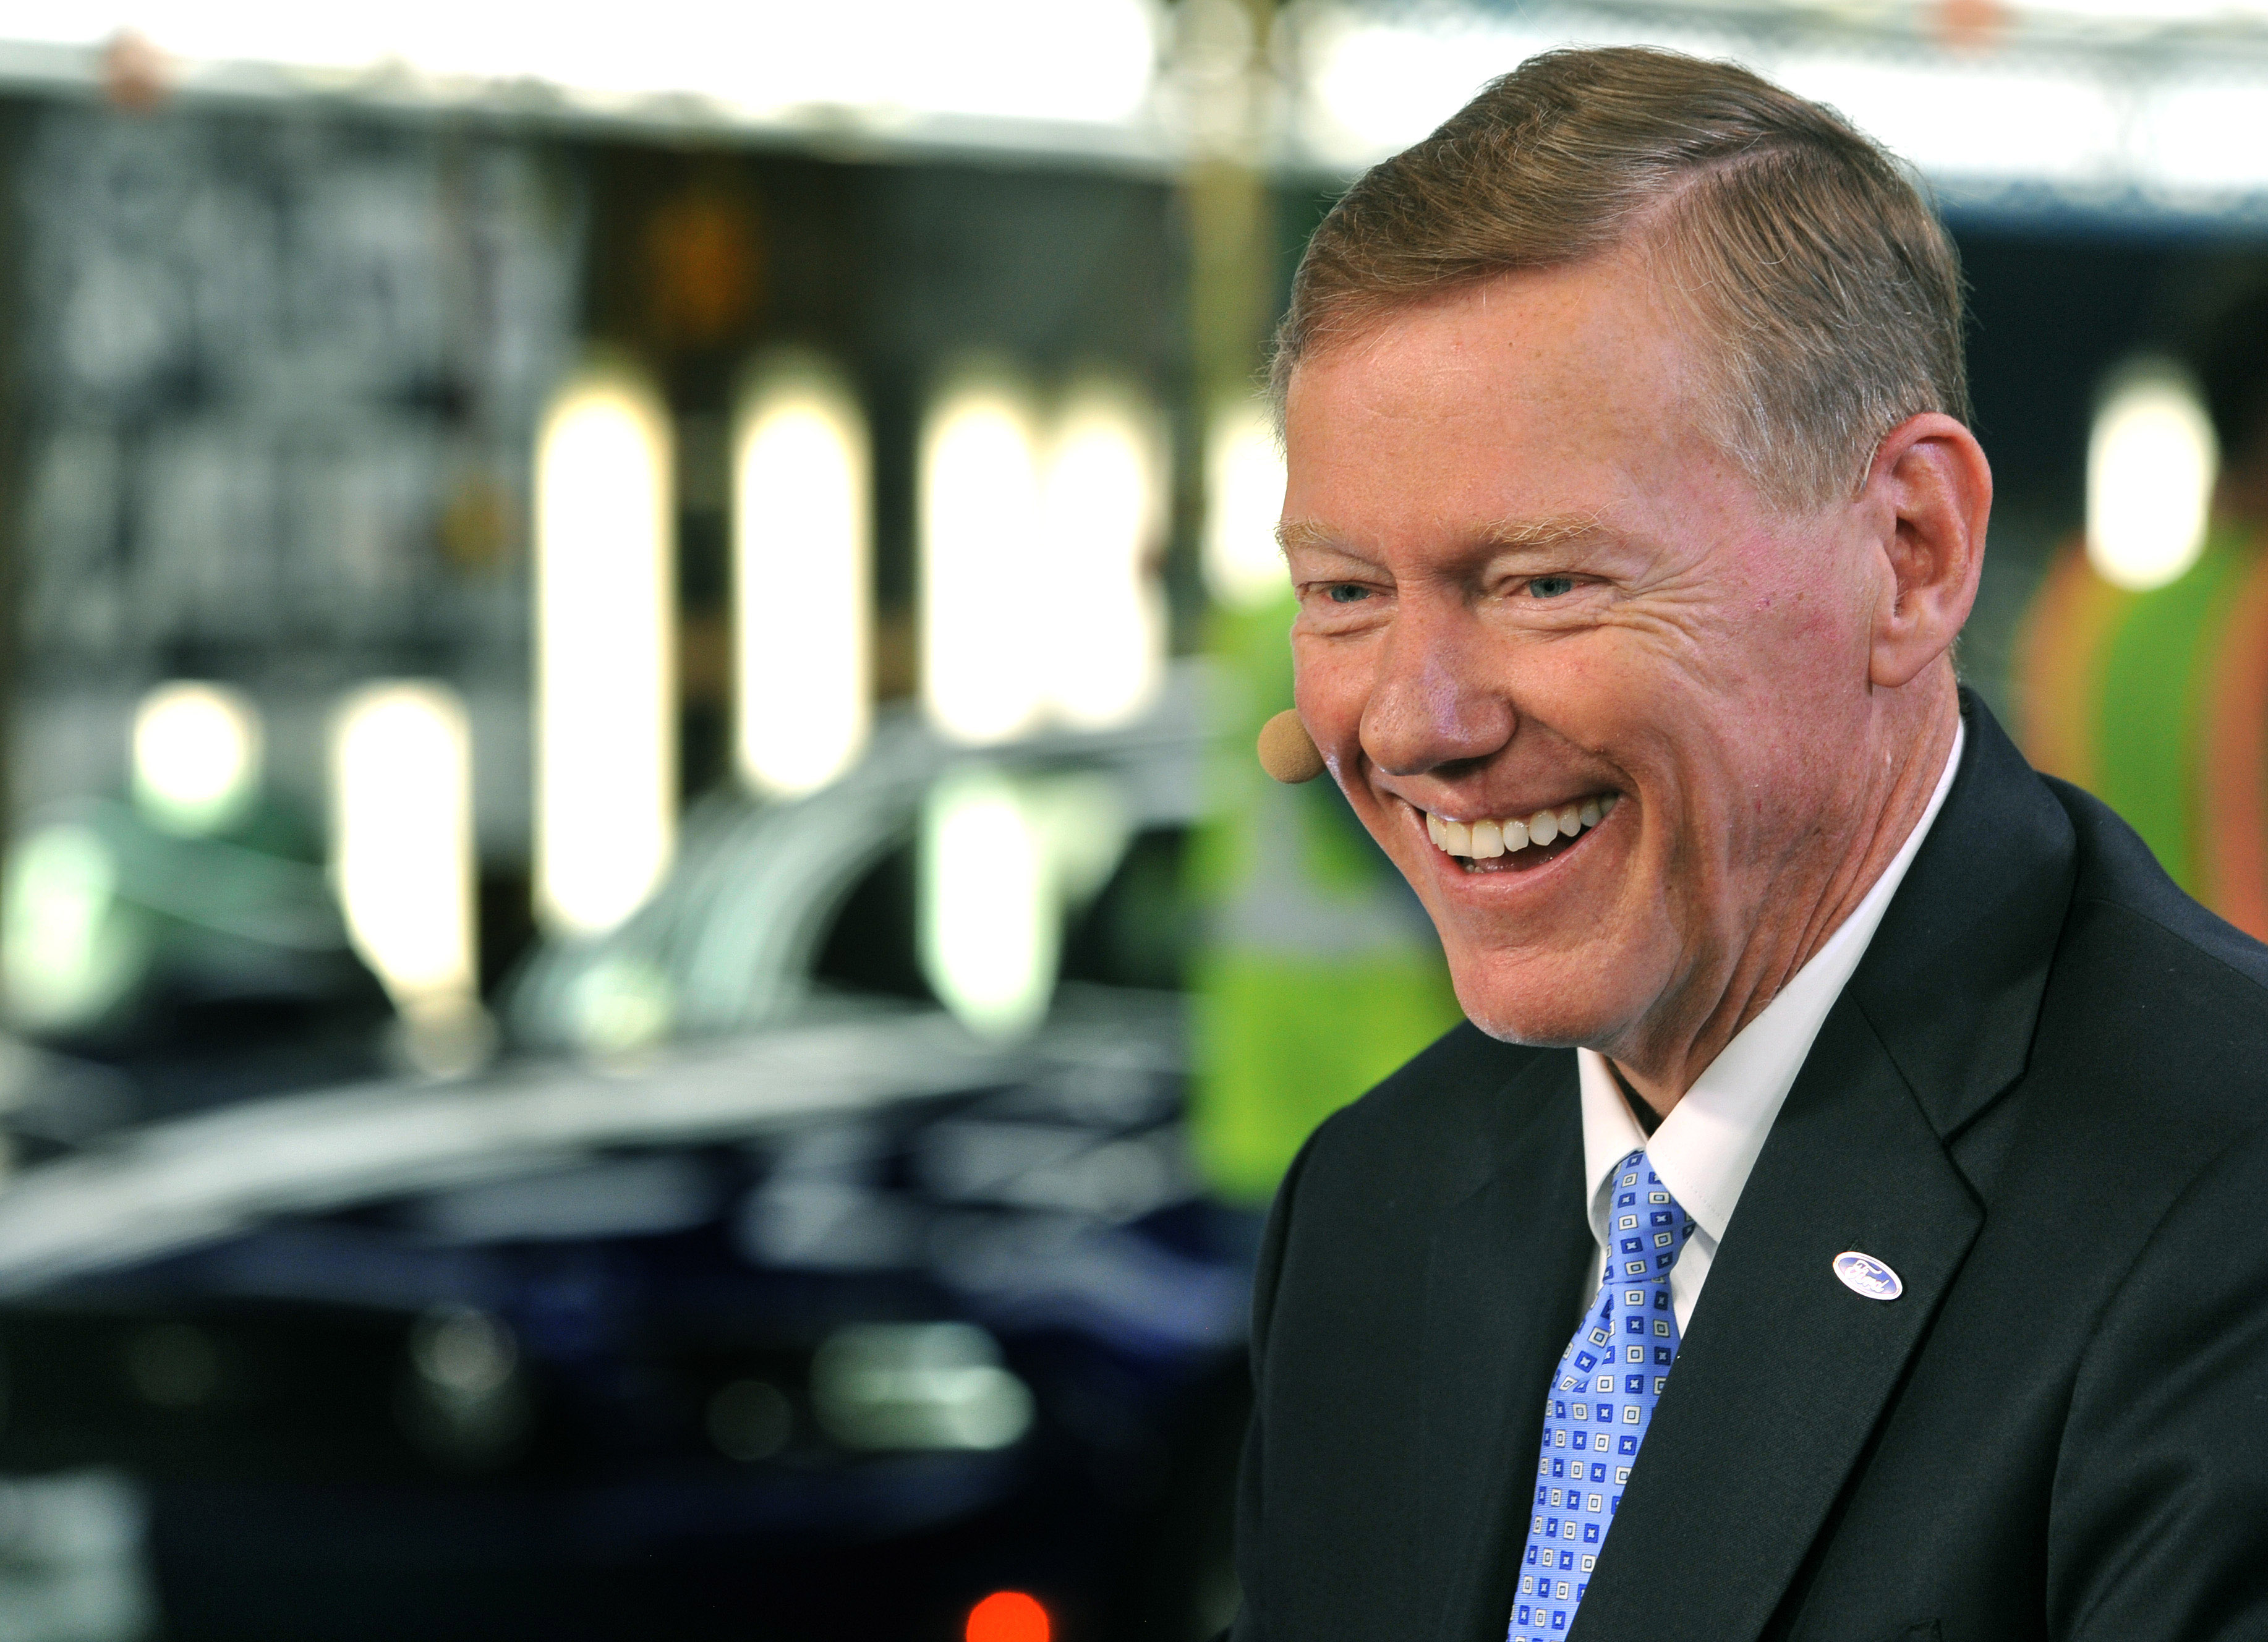 Alan Mulally scholarship